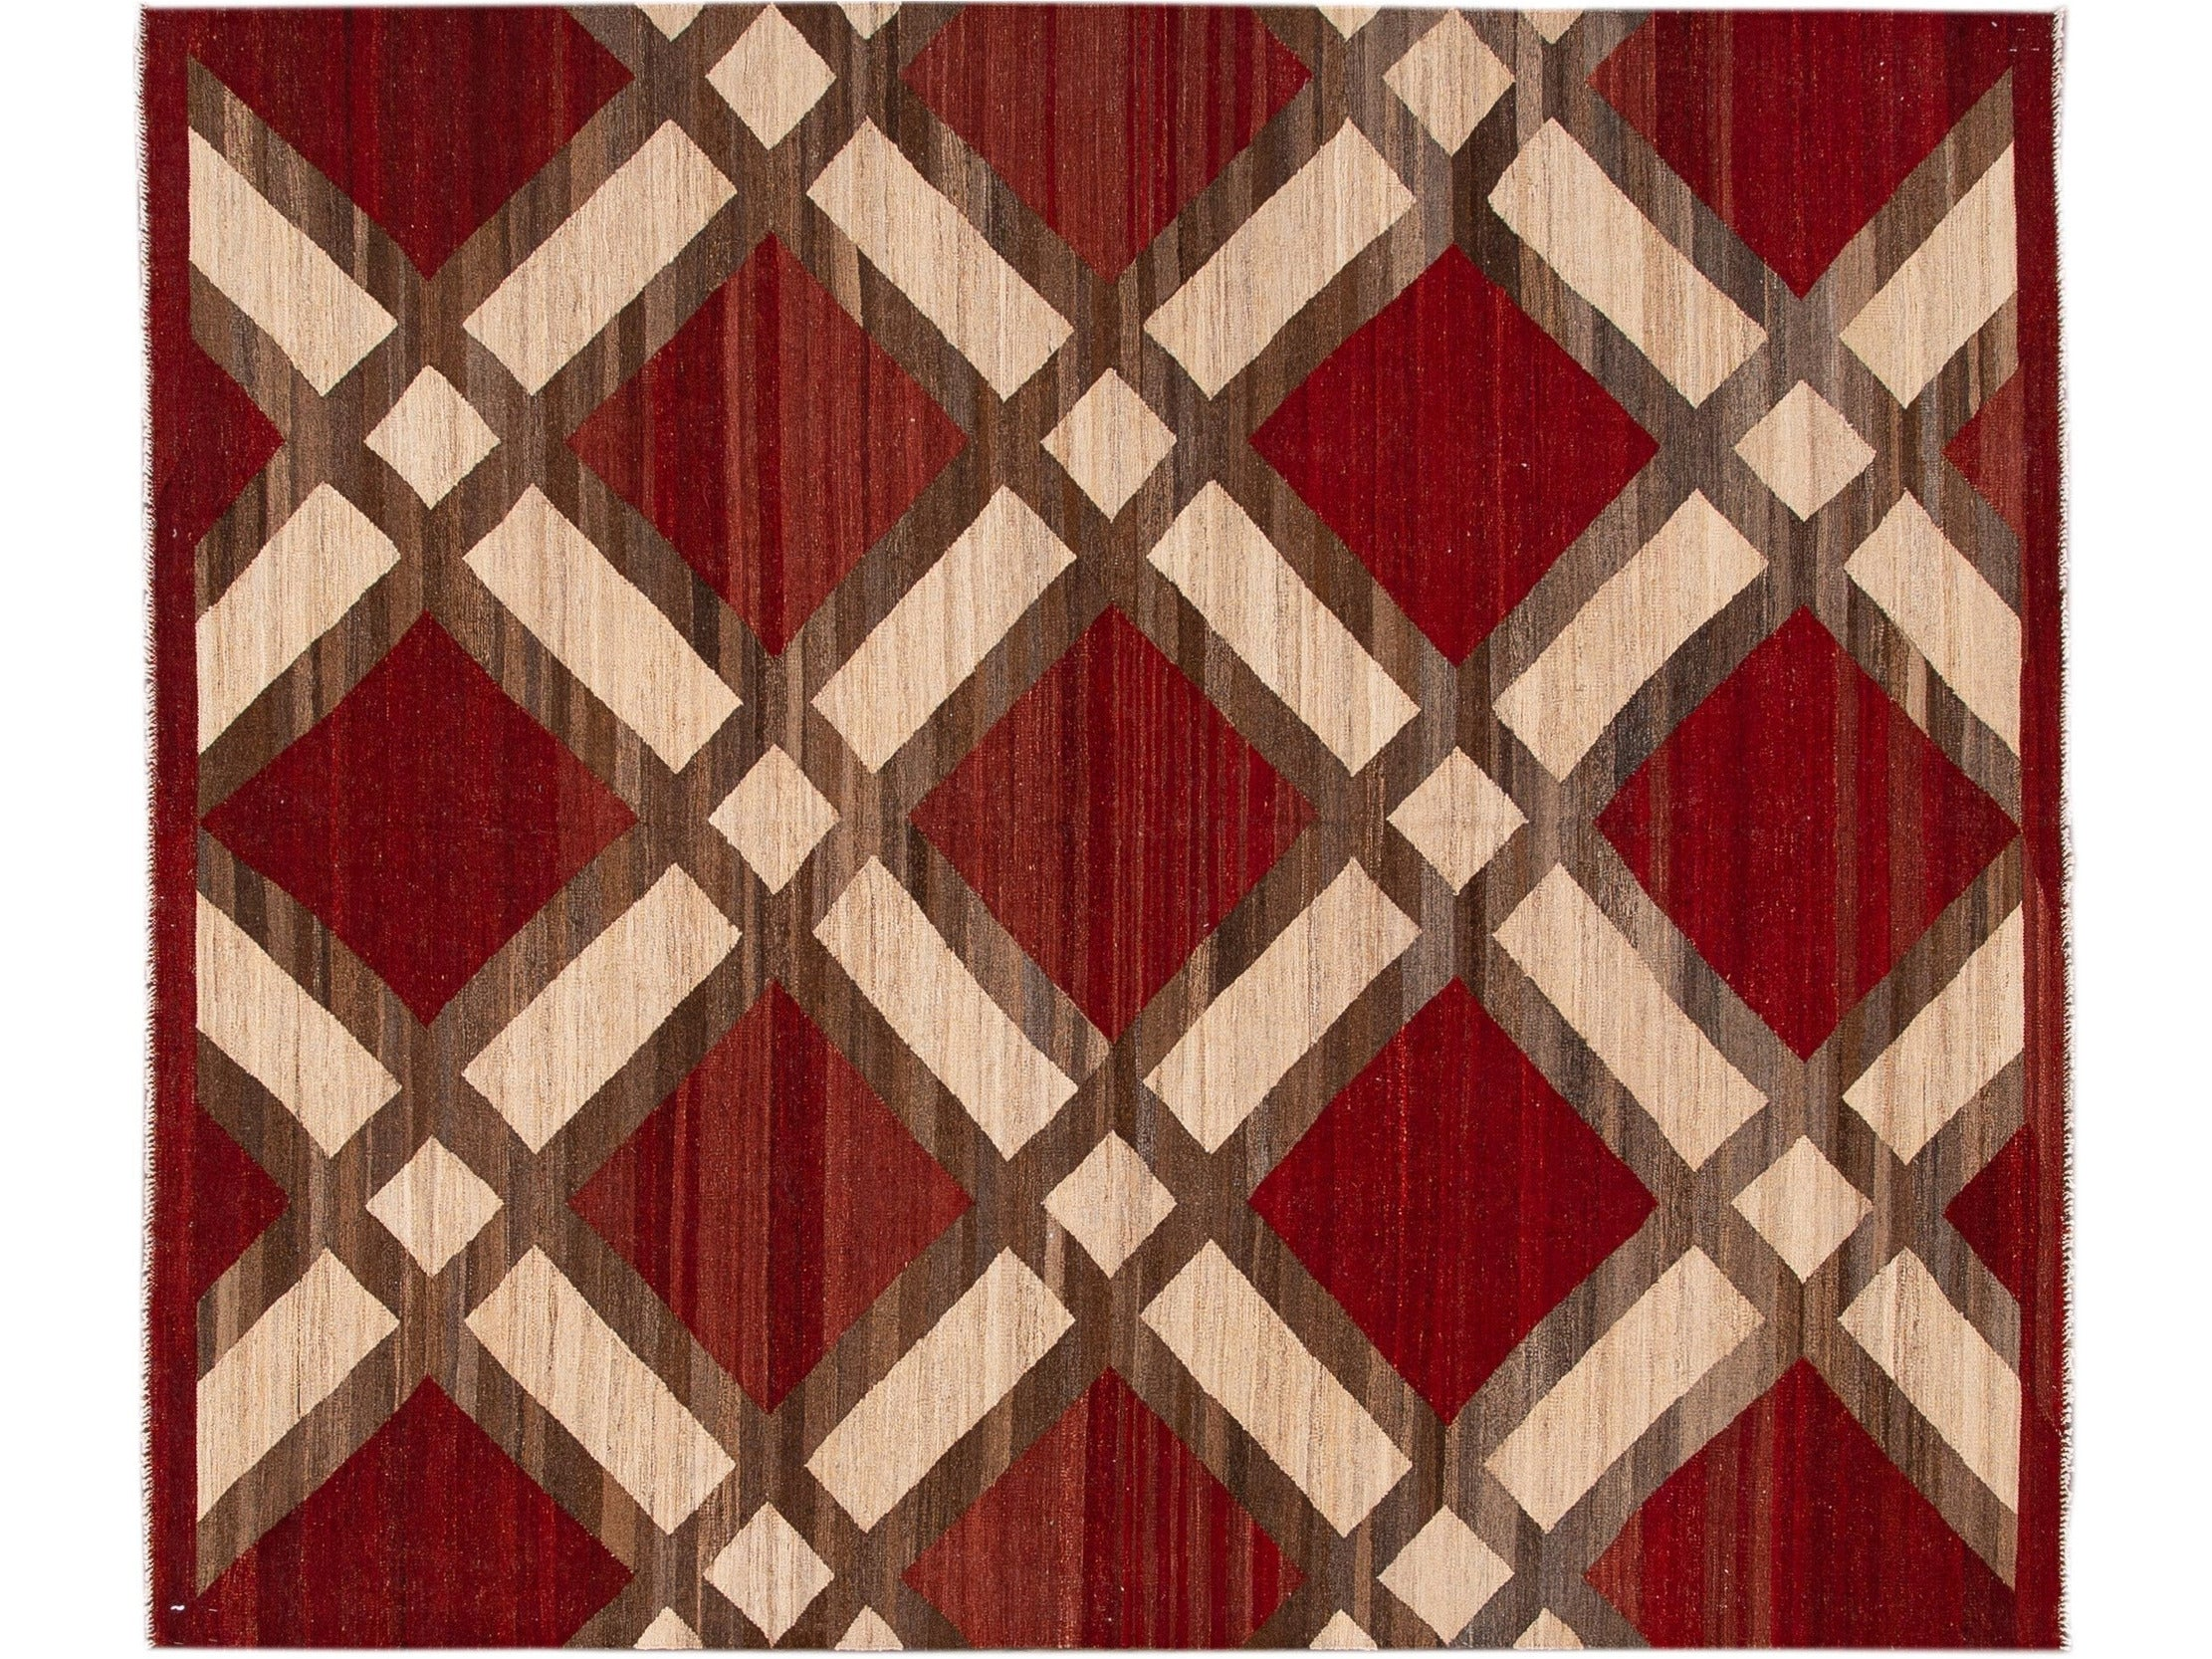 Modern Kilim Flatweave Red and Beige Geometric Wool Rug